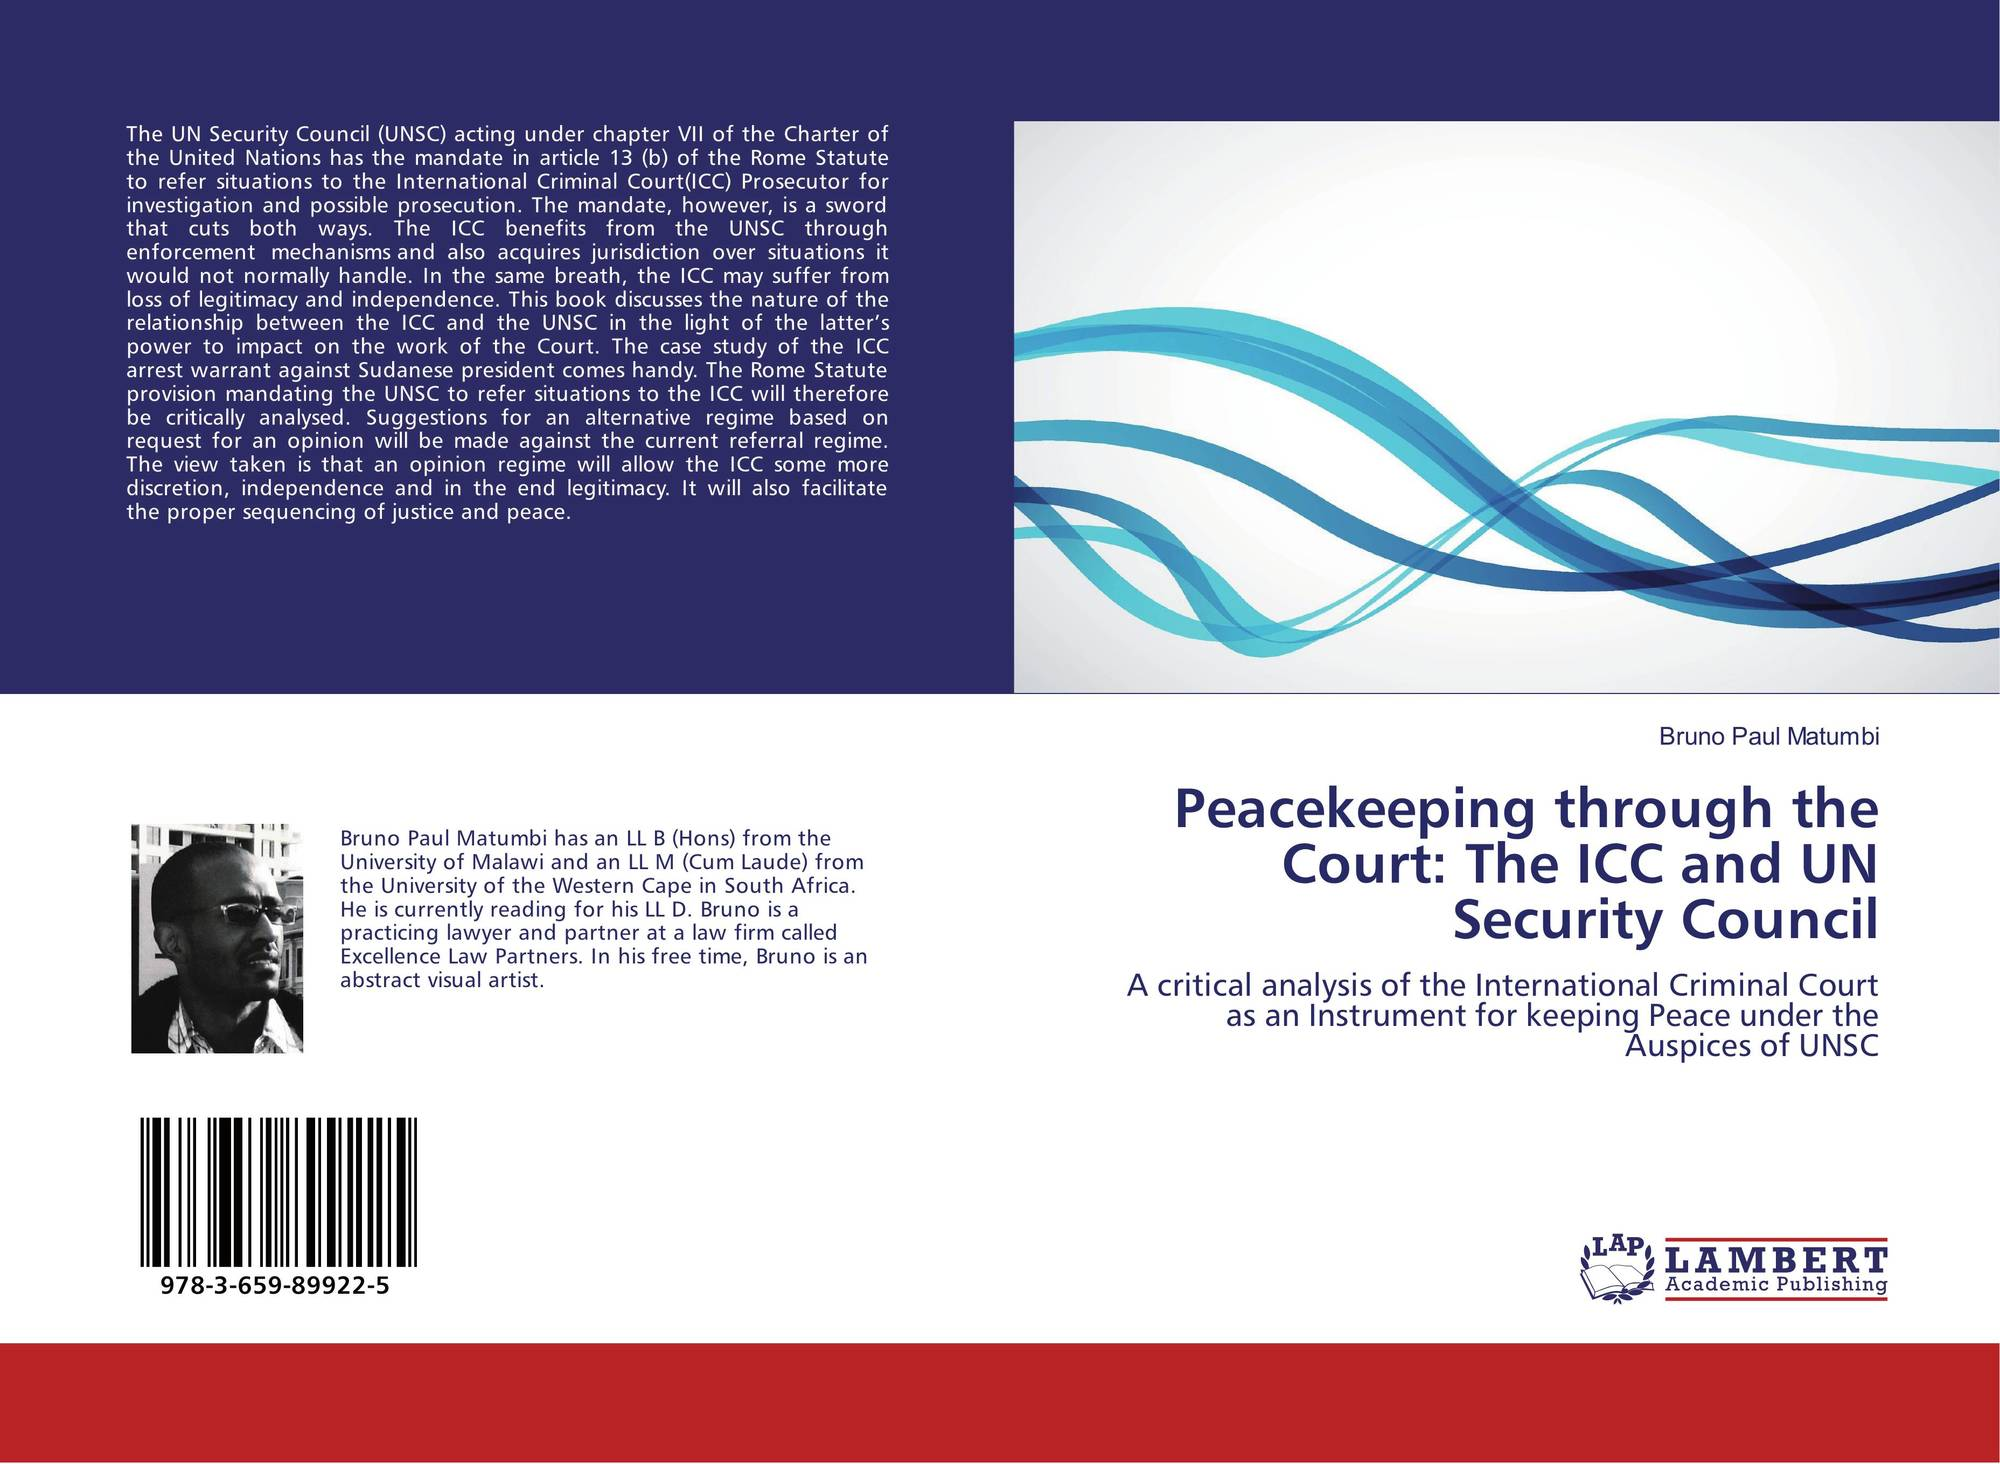 principles of the security council and un peacekeeping The three core principles of consent, impartiality and the use of force only in  the increasing 'robustness' of un peacekeeping missions, the centrality of protection  peace and security can emerge from within countries (un security council.